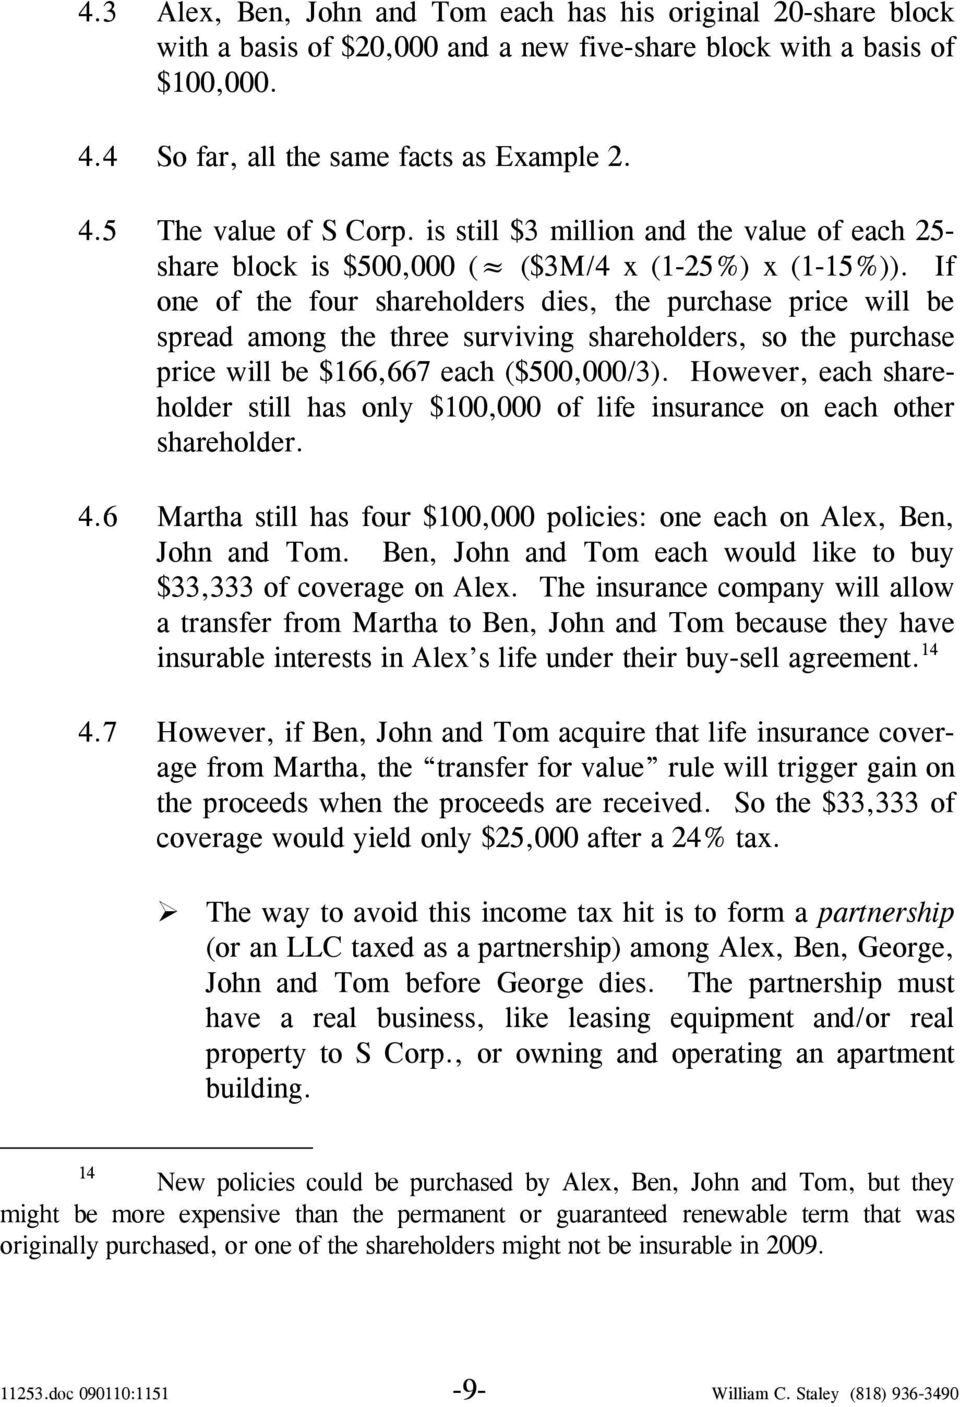 If one of the four shareholders dies, the purchase price will be spread among the three surviving shareholders, so the purchase price will be $166,667 each ($500,000/3).